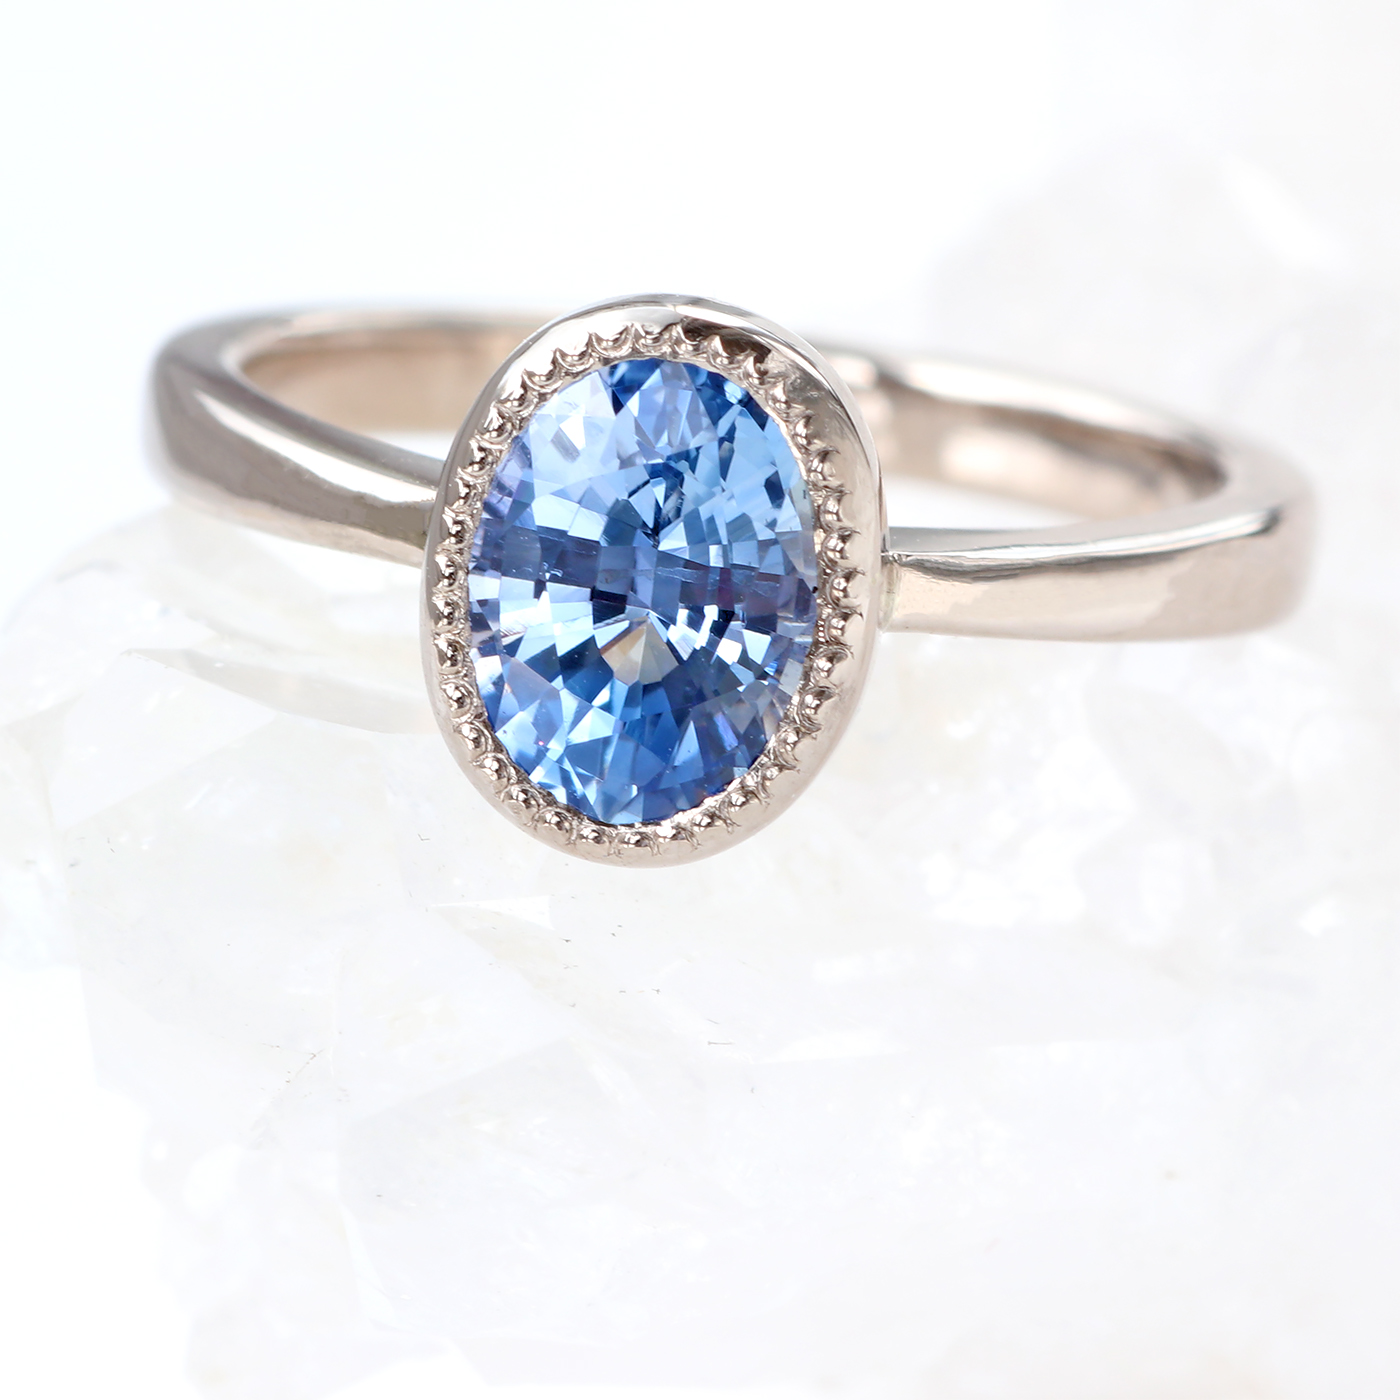 Lilia Nash Oval Cut Sapphire Ring in 18ct White Gold - Size K